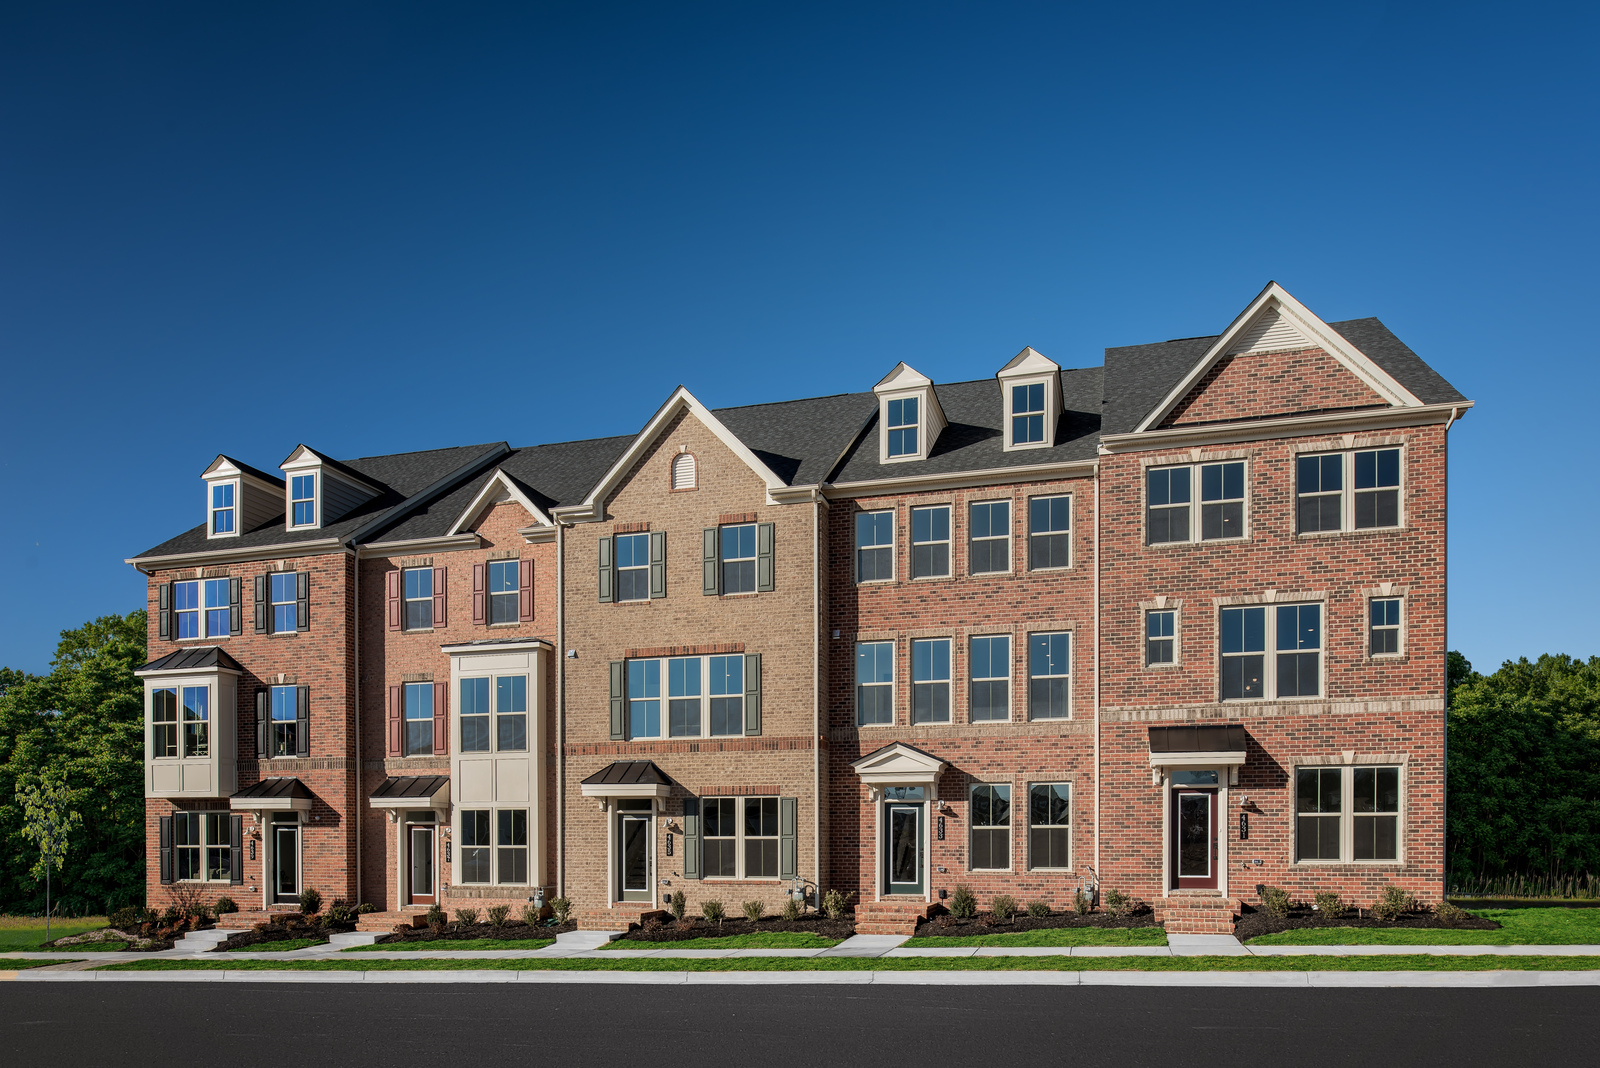 Grand townhome living has arrived near the shops and dining of Urbana, just moments off I-270. Schedule a visit today!